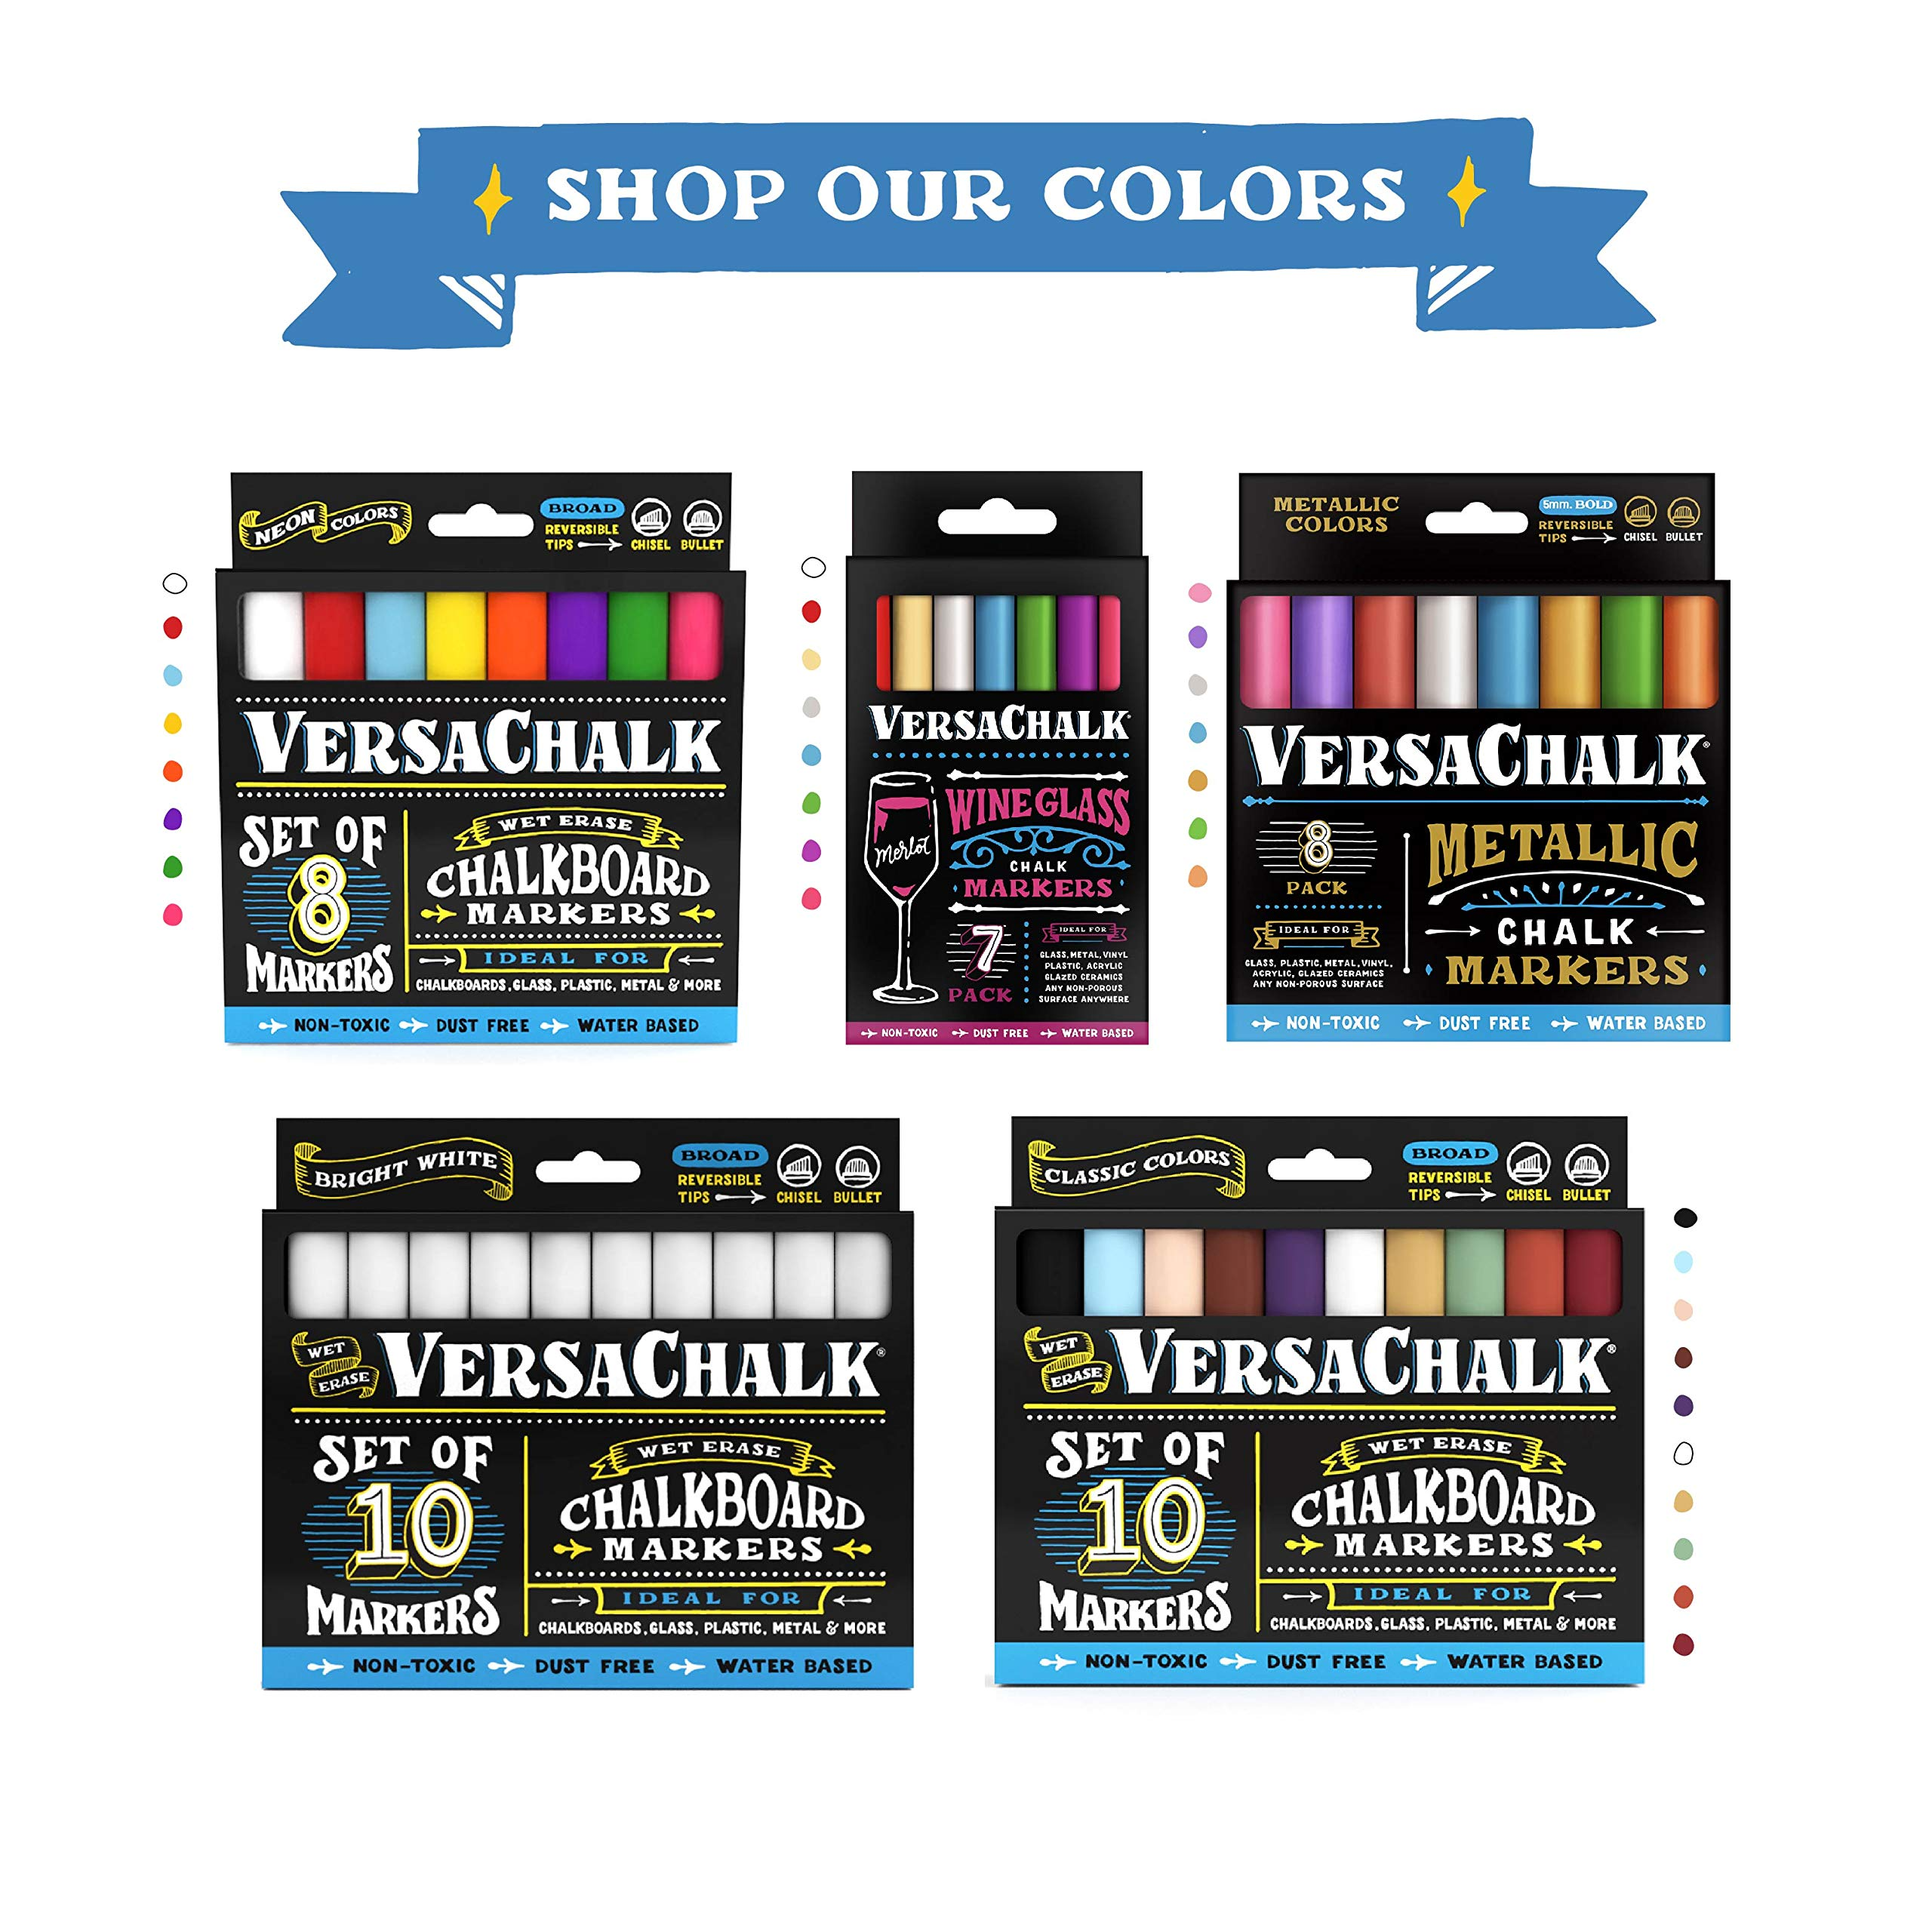 Classic Liquid Chalk Ink Chalkboard Markers by VersaChalk - Wet Erase Chalk Pens for Chalkboard Sign, Blackboard, Dry Erase Board (5mm Bold Reversible Tip) by VersaChalk (Image #8)